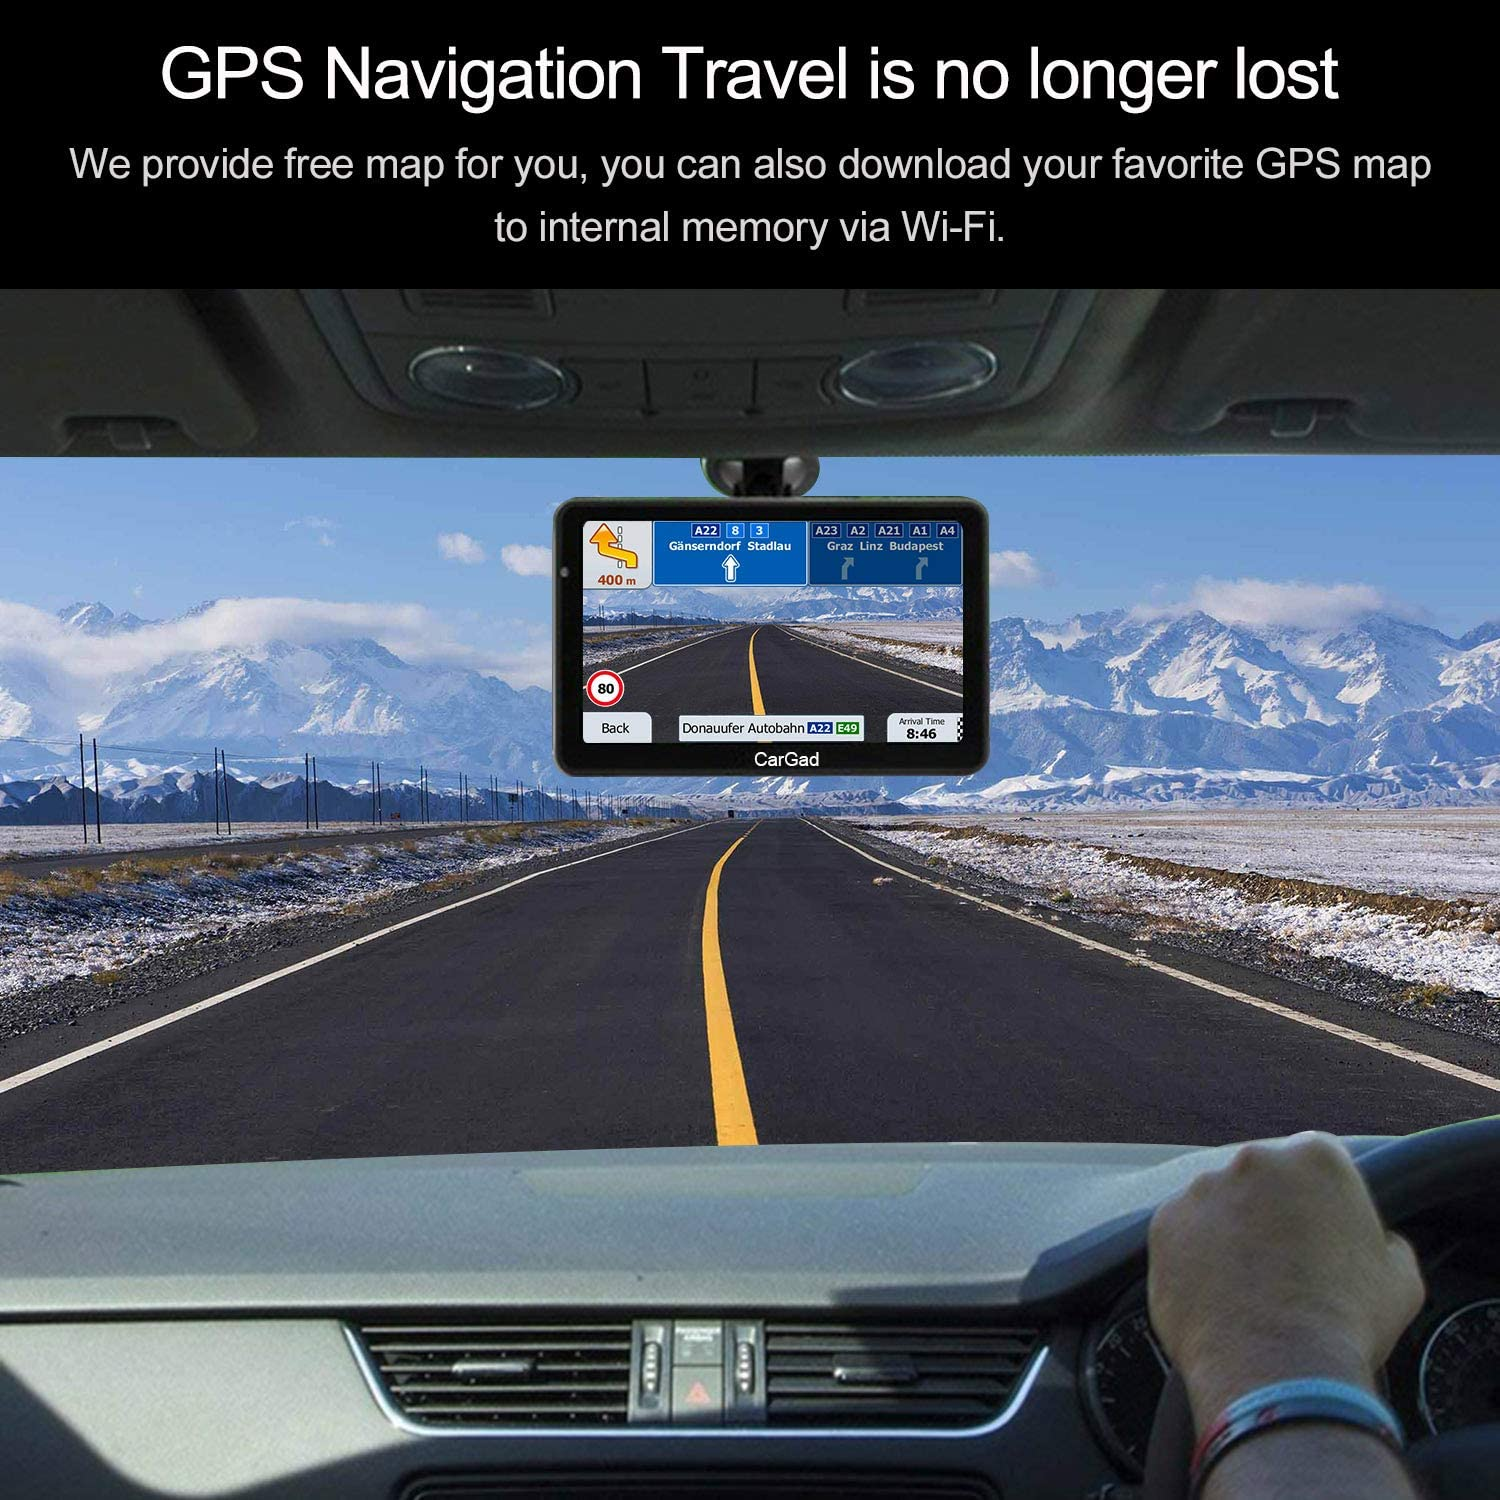 GPS Navigation for car 7 inch//8GB Aonerex Vehicle GPS Navigation System with Built-in Lifetime Maps,FM Car Navigation and Spoken Turn-by-Turn Directions